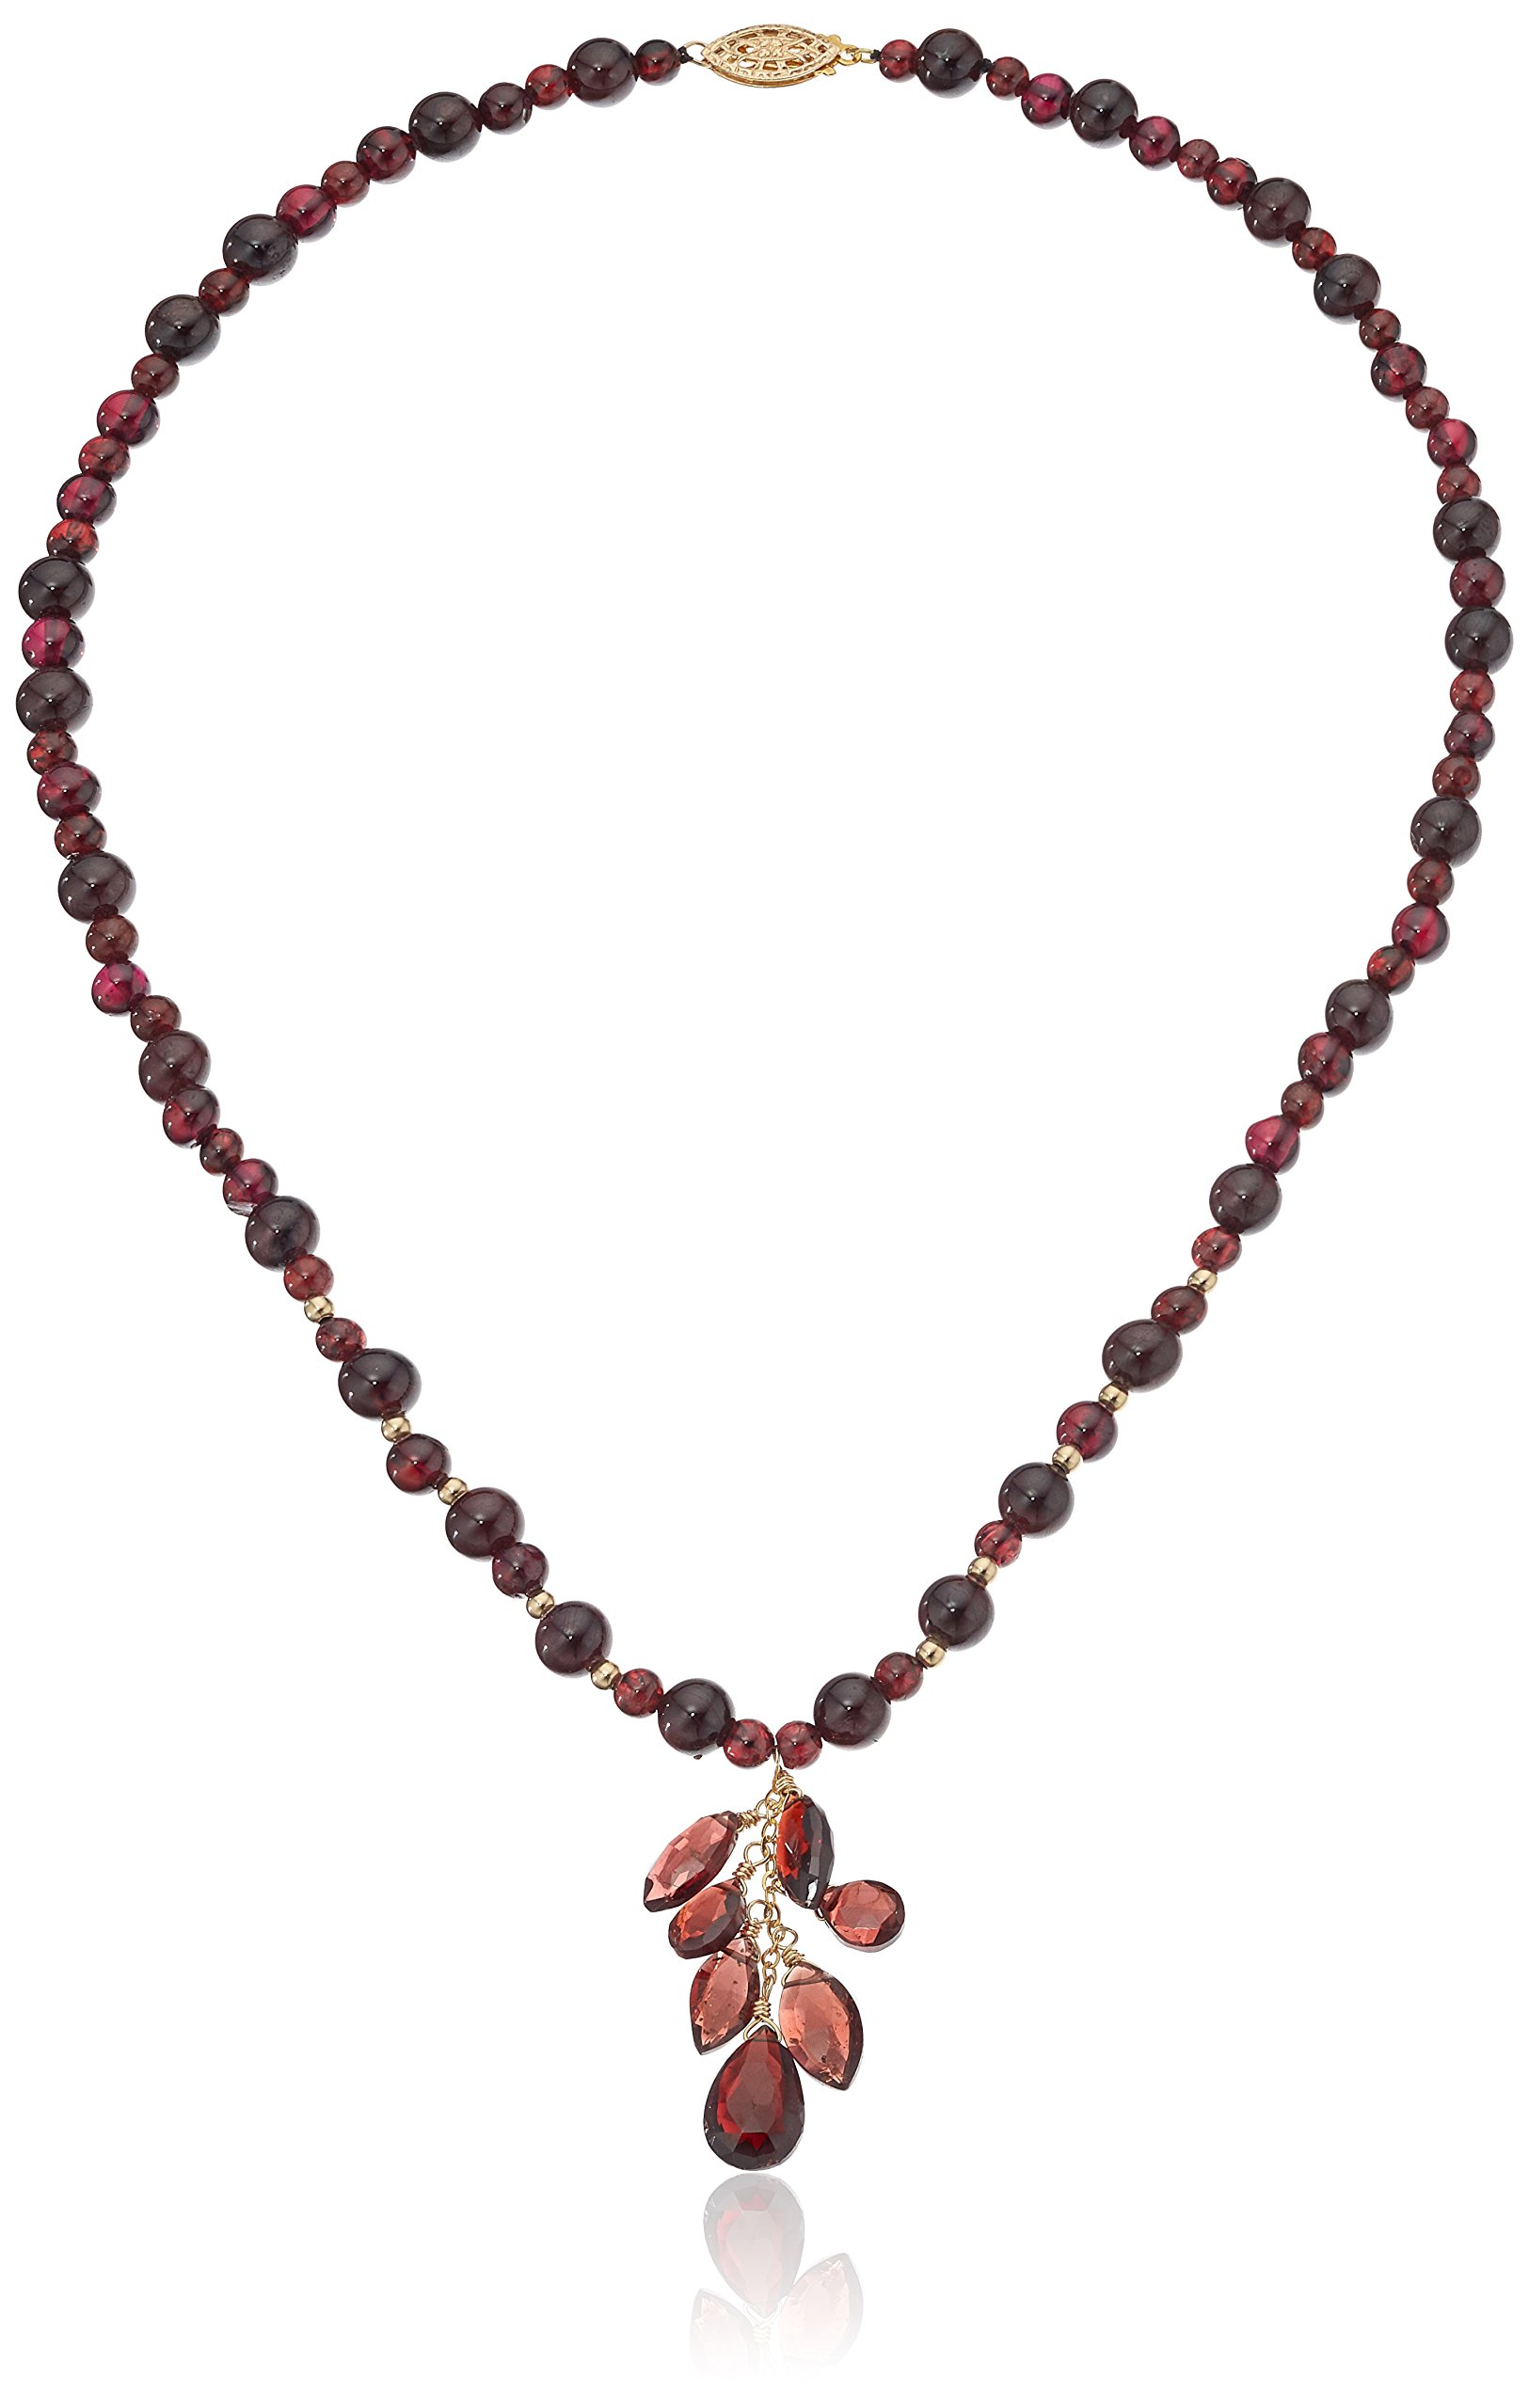 Handmade Beaded Garnet with Multi-Navette and Teardrop Center Shower Strand Necklace, 16'' by Amazon Collection (Image #1)